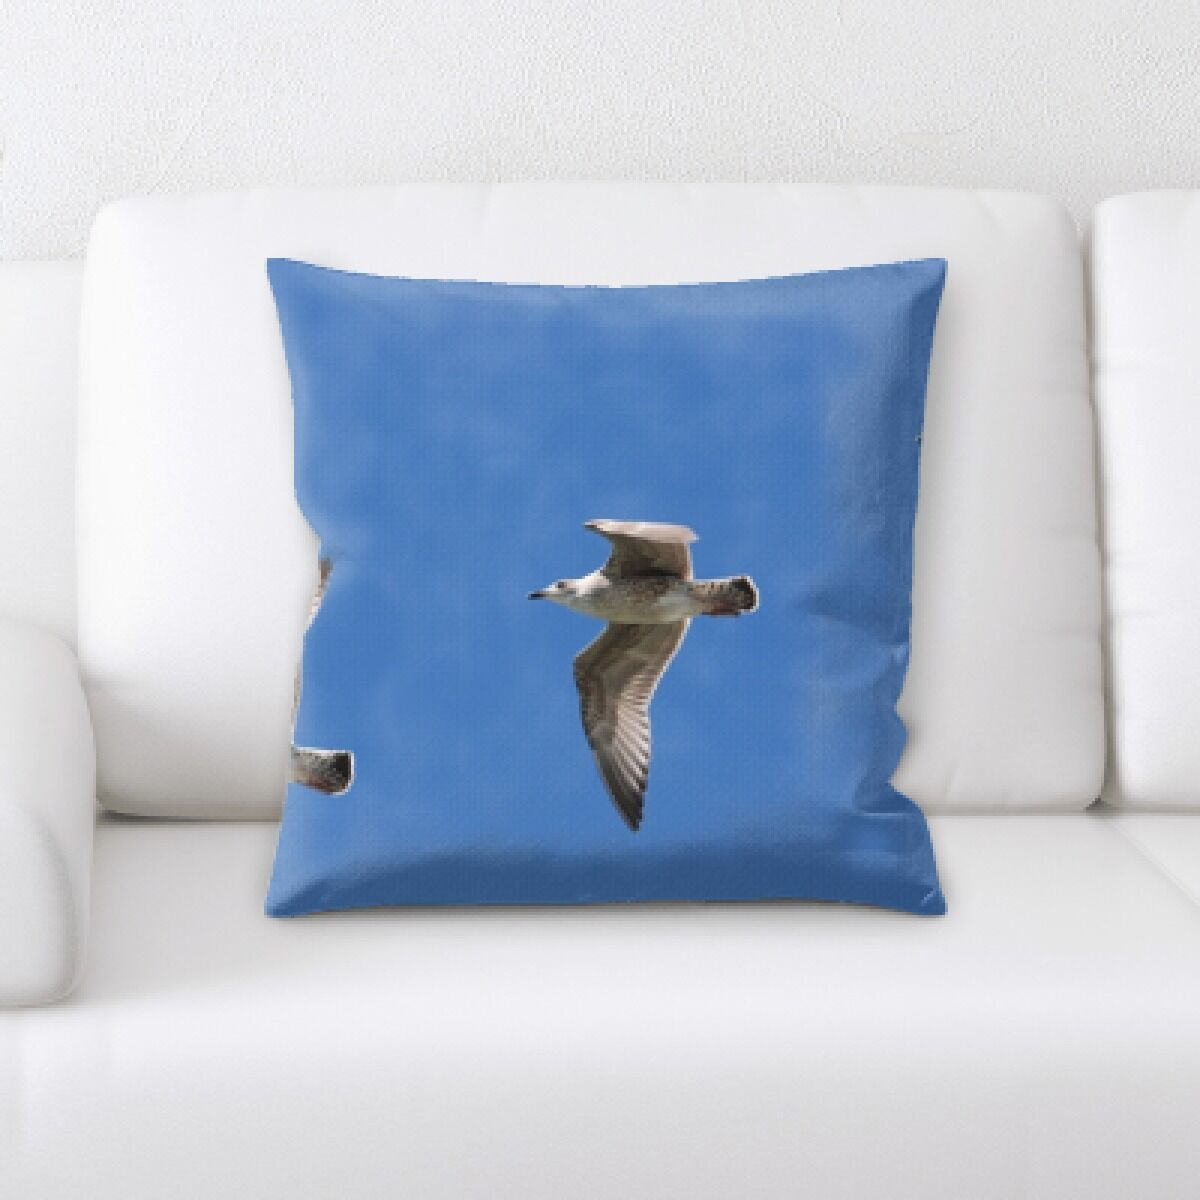 Claborn 3 Birds Flying Together Throw Pillow